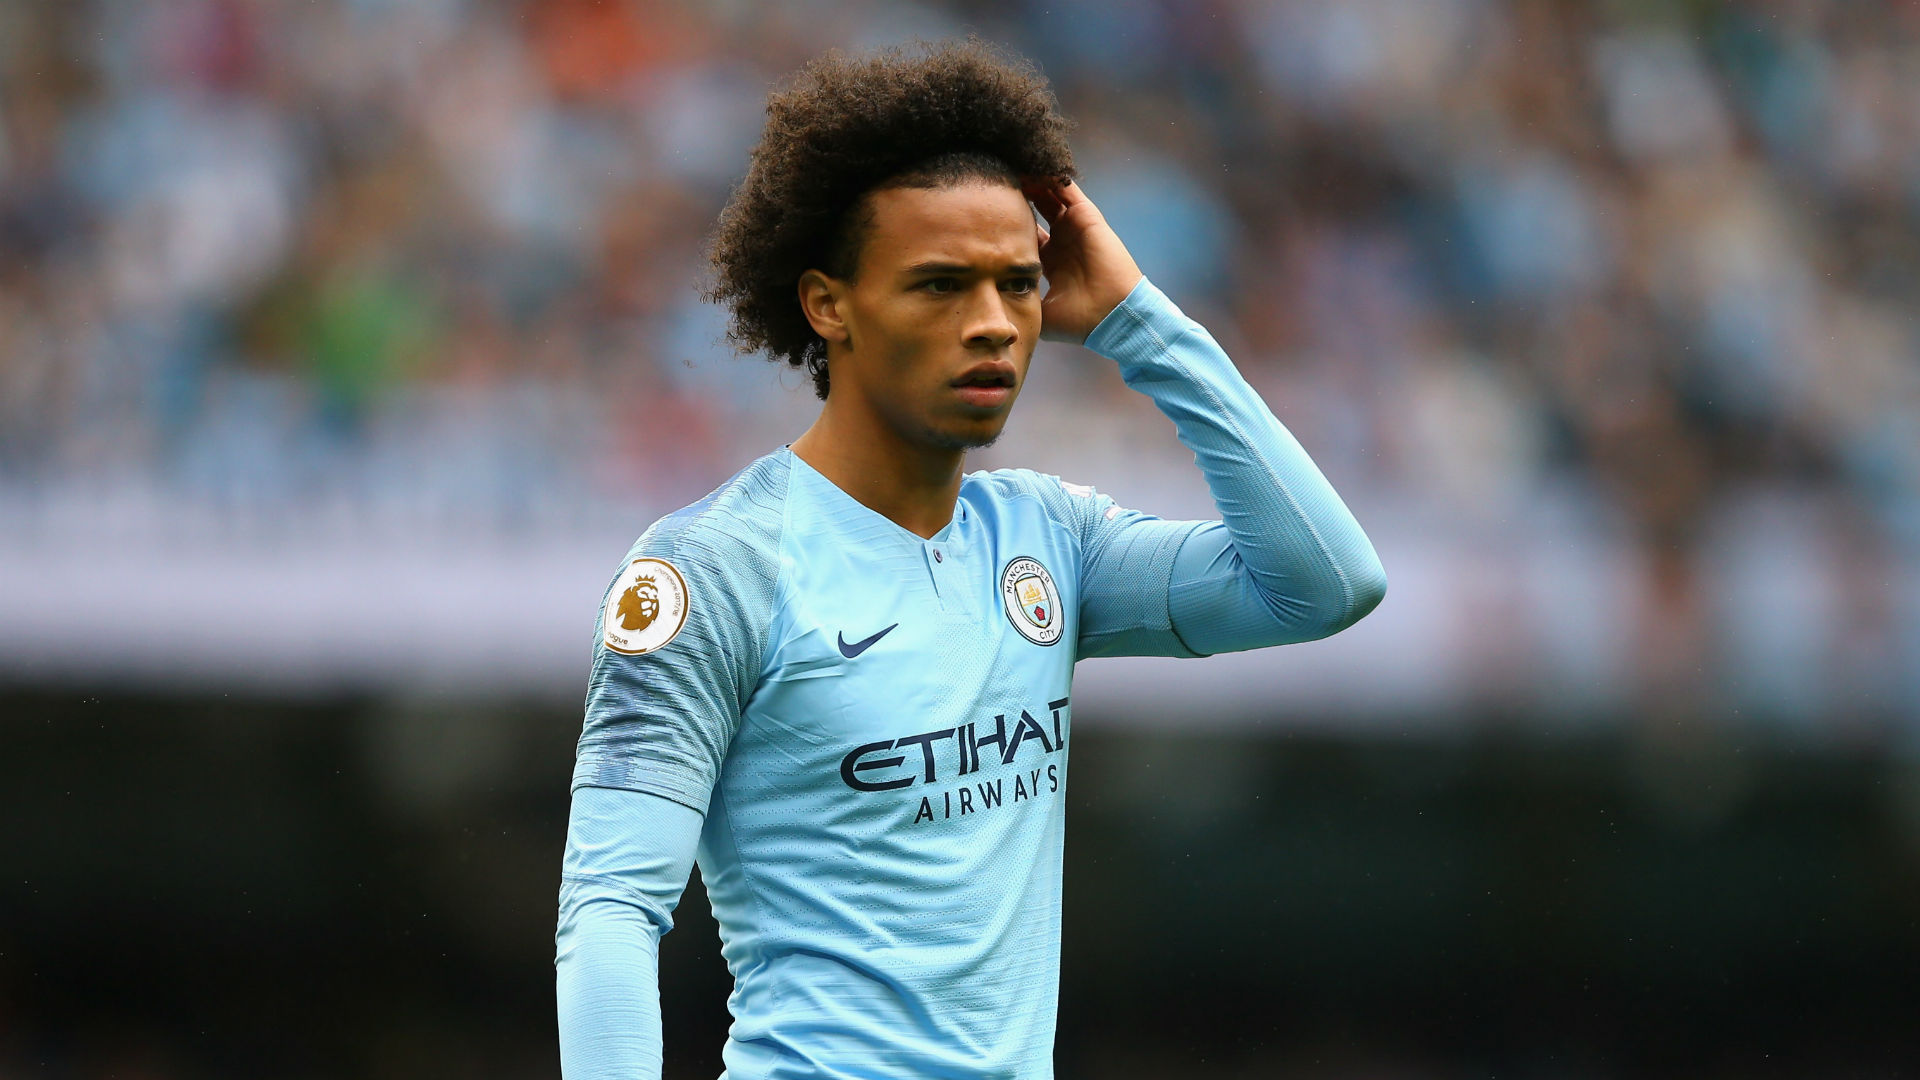 Man City boss Guardiola: Sane knows what he must do